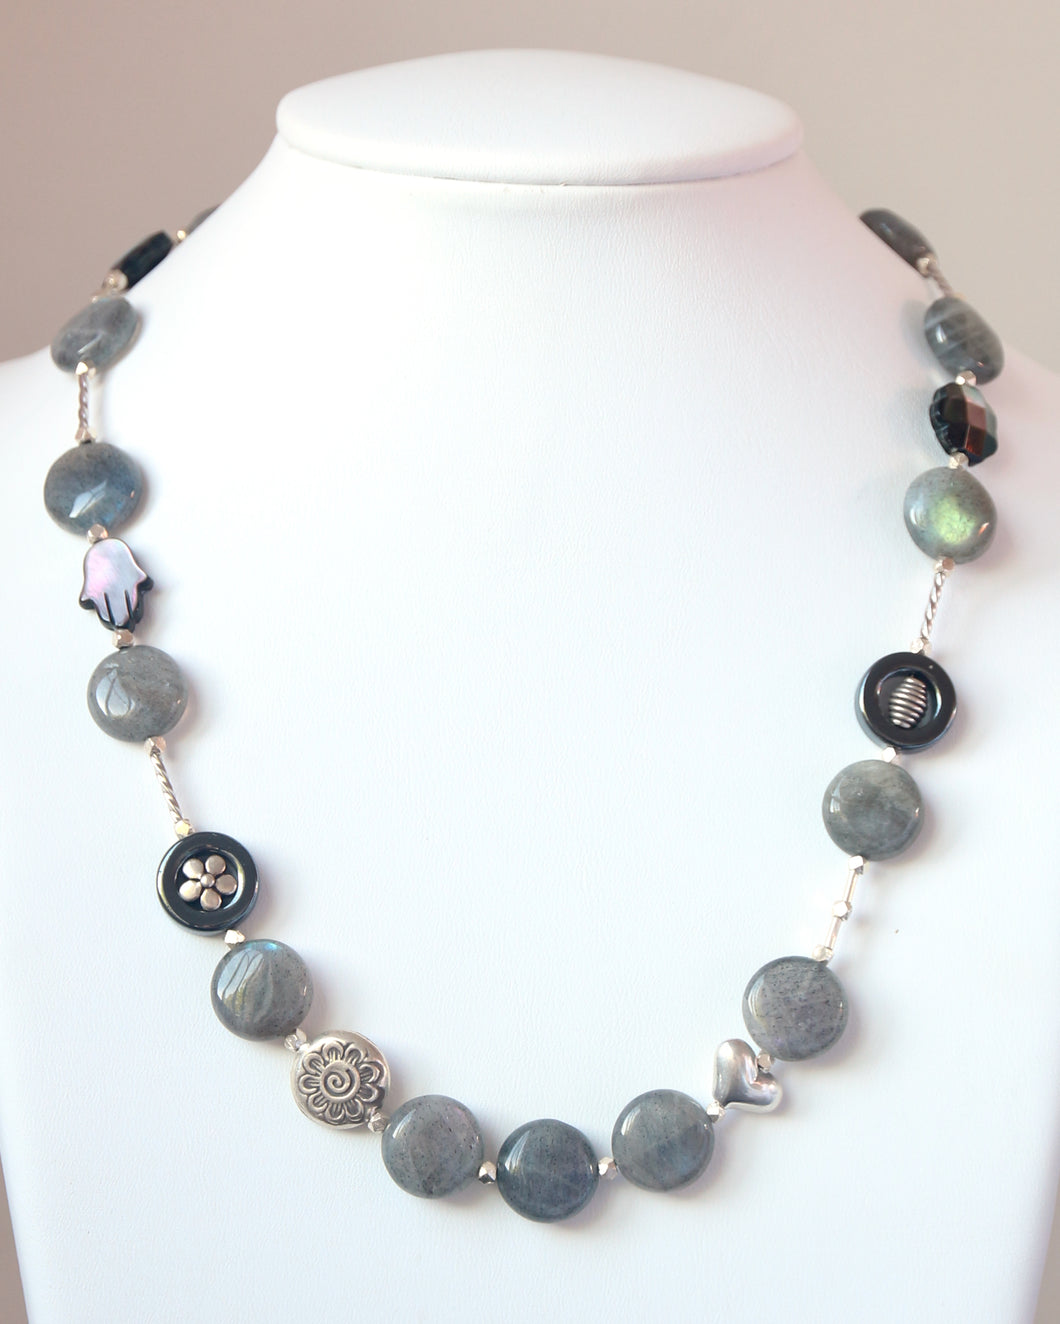 Australian Handmade Grey Necklace with Labradorite Hematite Mother Of Pearl and Sterling Silver